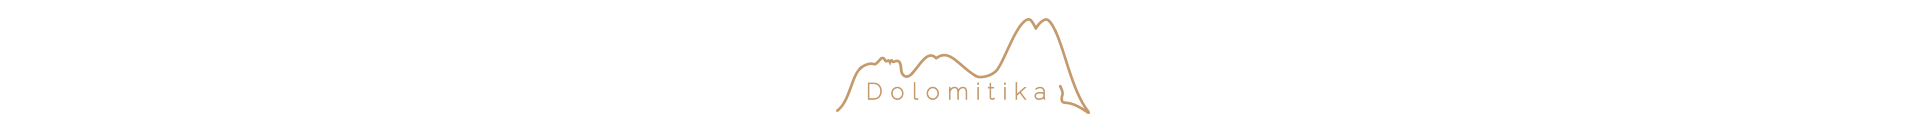 Dolomitika Care